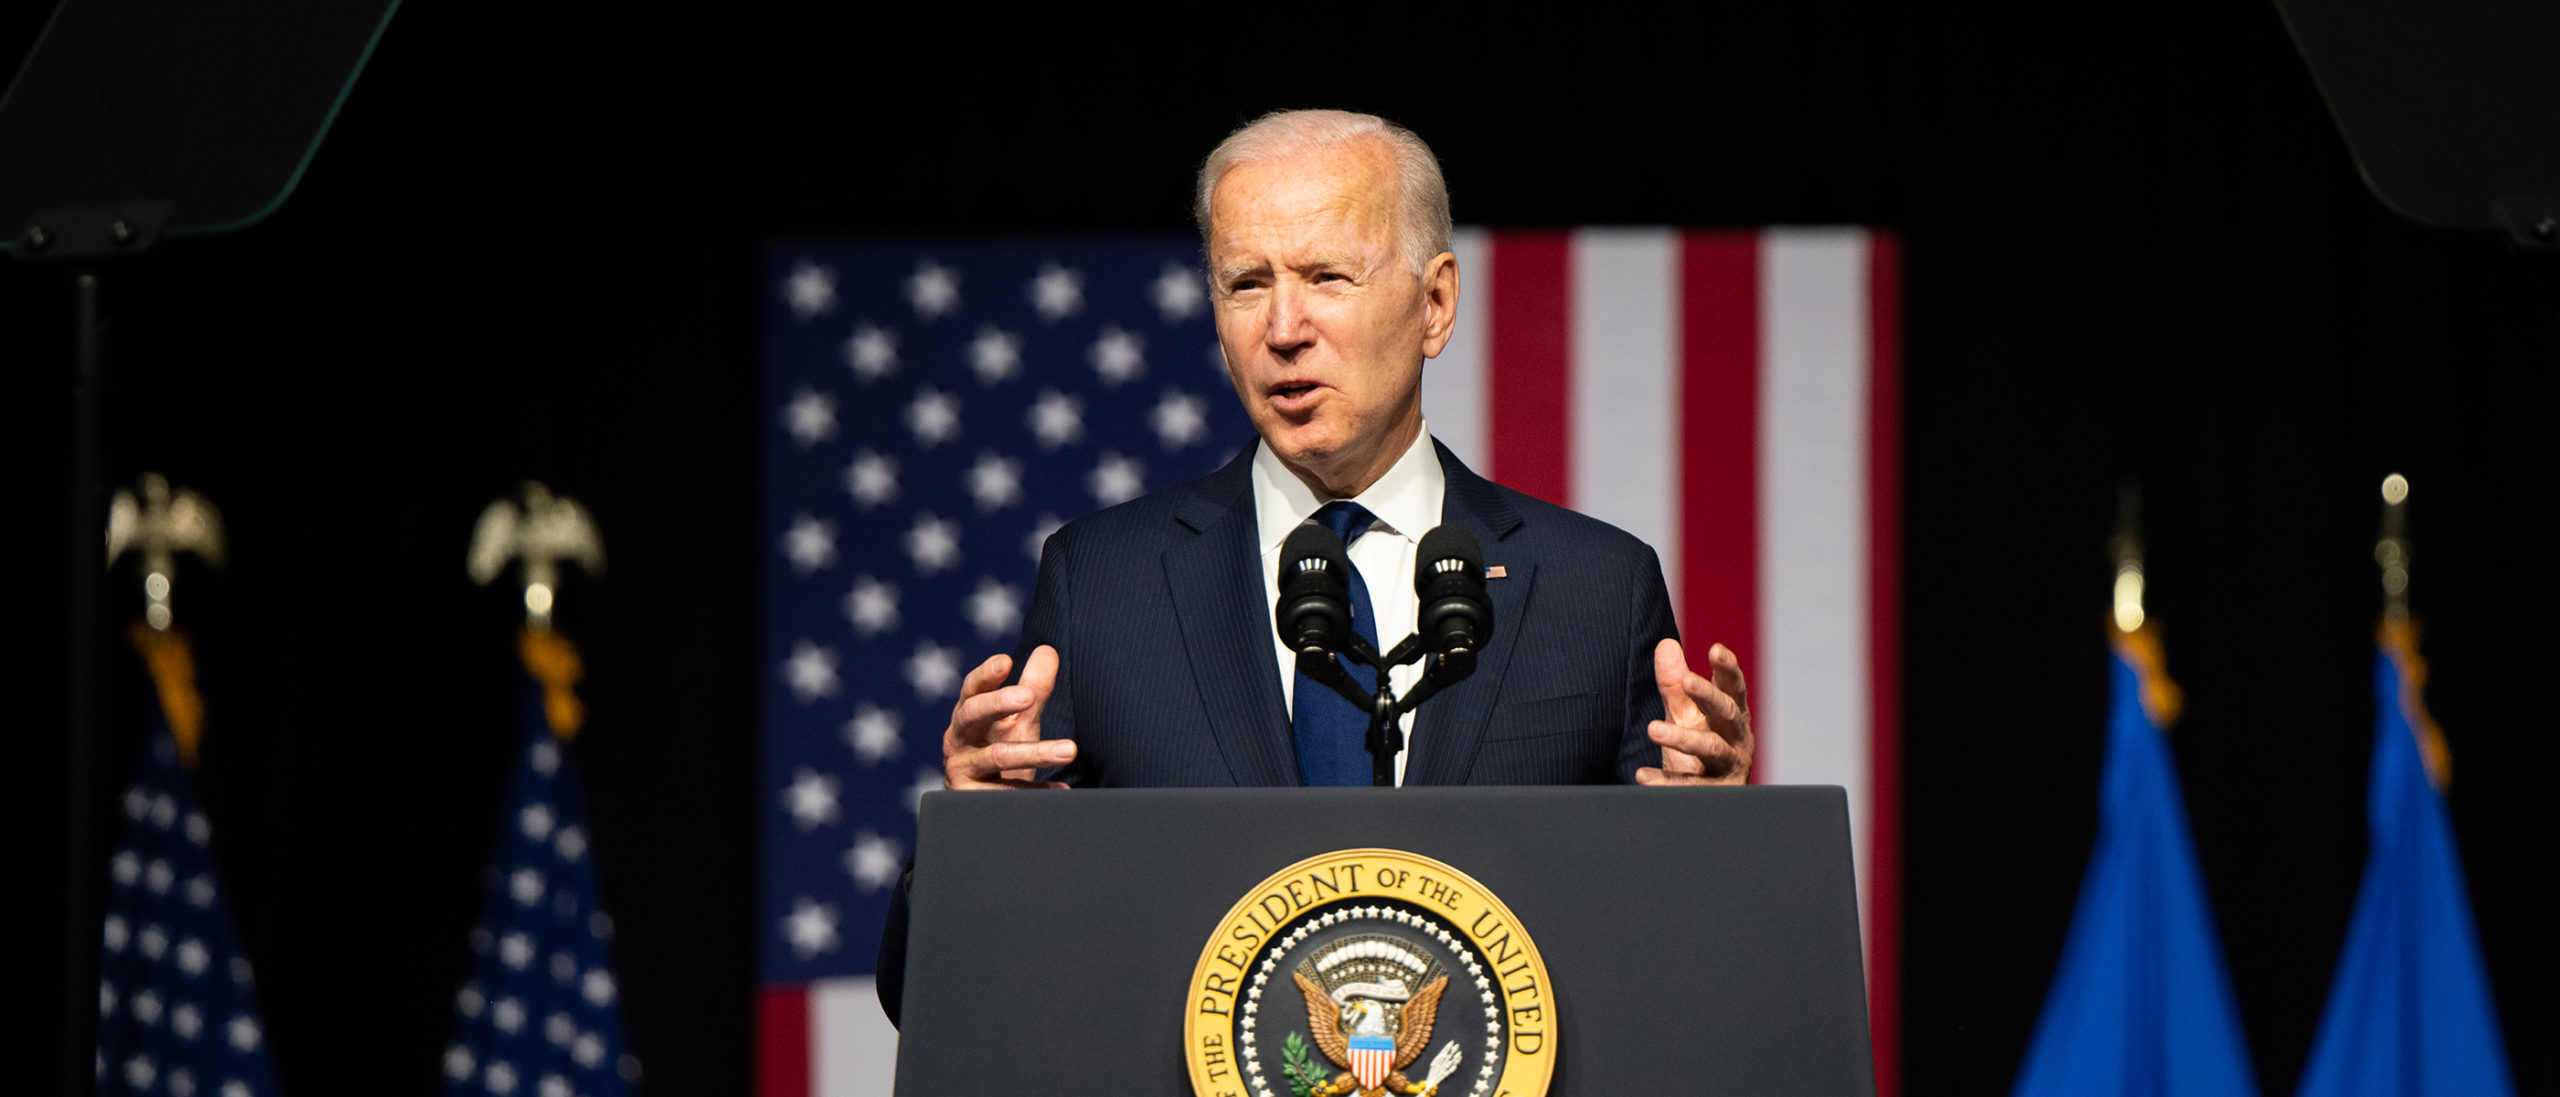 U.S. President Joe Biden speaks at a rally during commemorations of the 100th anniversary of the Tulsa Race Massacre on June 01, 2021 in Tulsa, Oklahoma. (Photo by Brandon Bell/Getty Images)